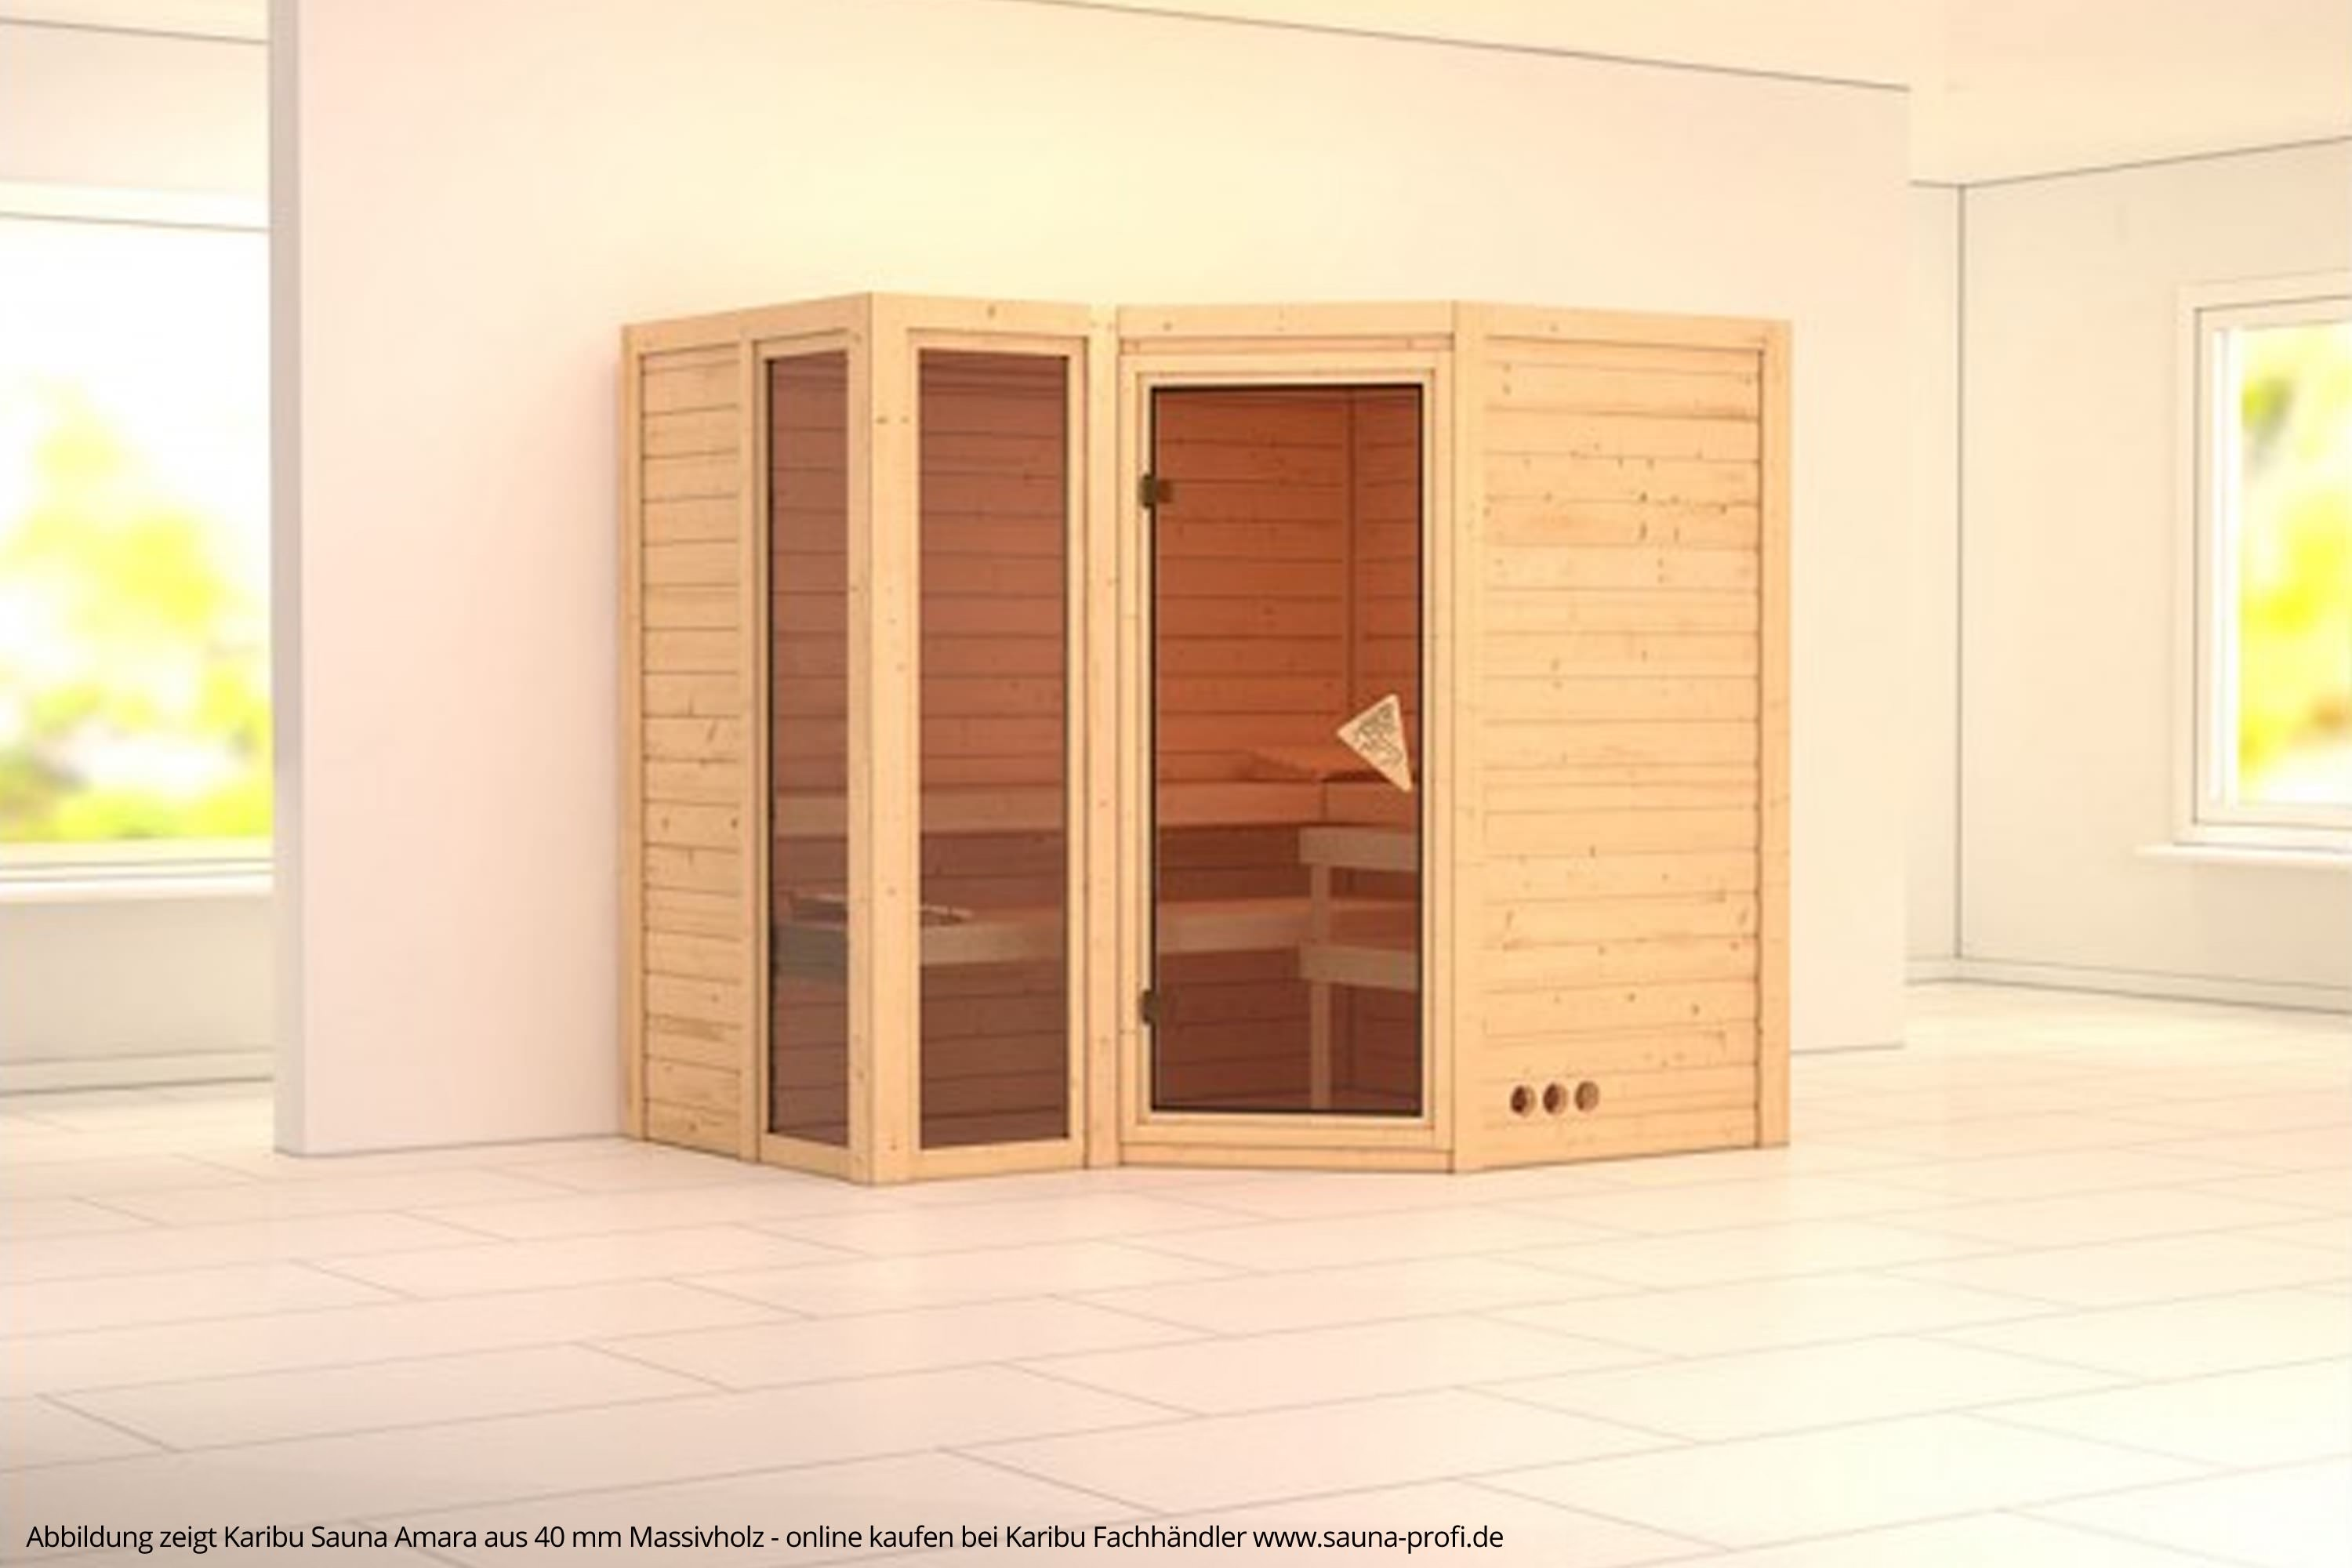 karibu sauna ausstellung. Black Bedroom Furniture Sets. Home Design Ideas